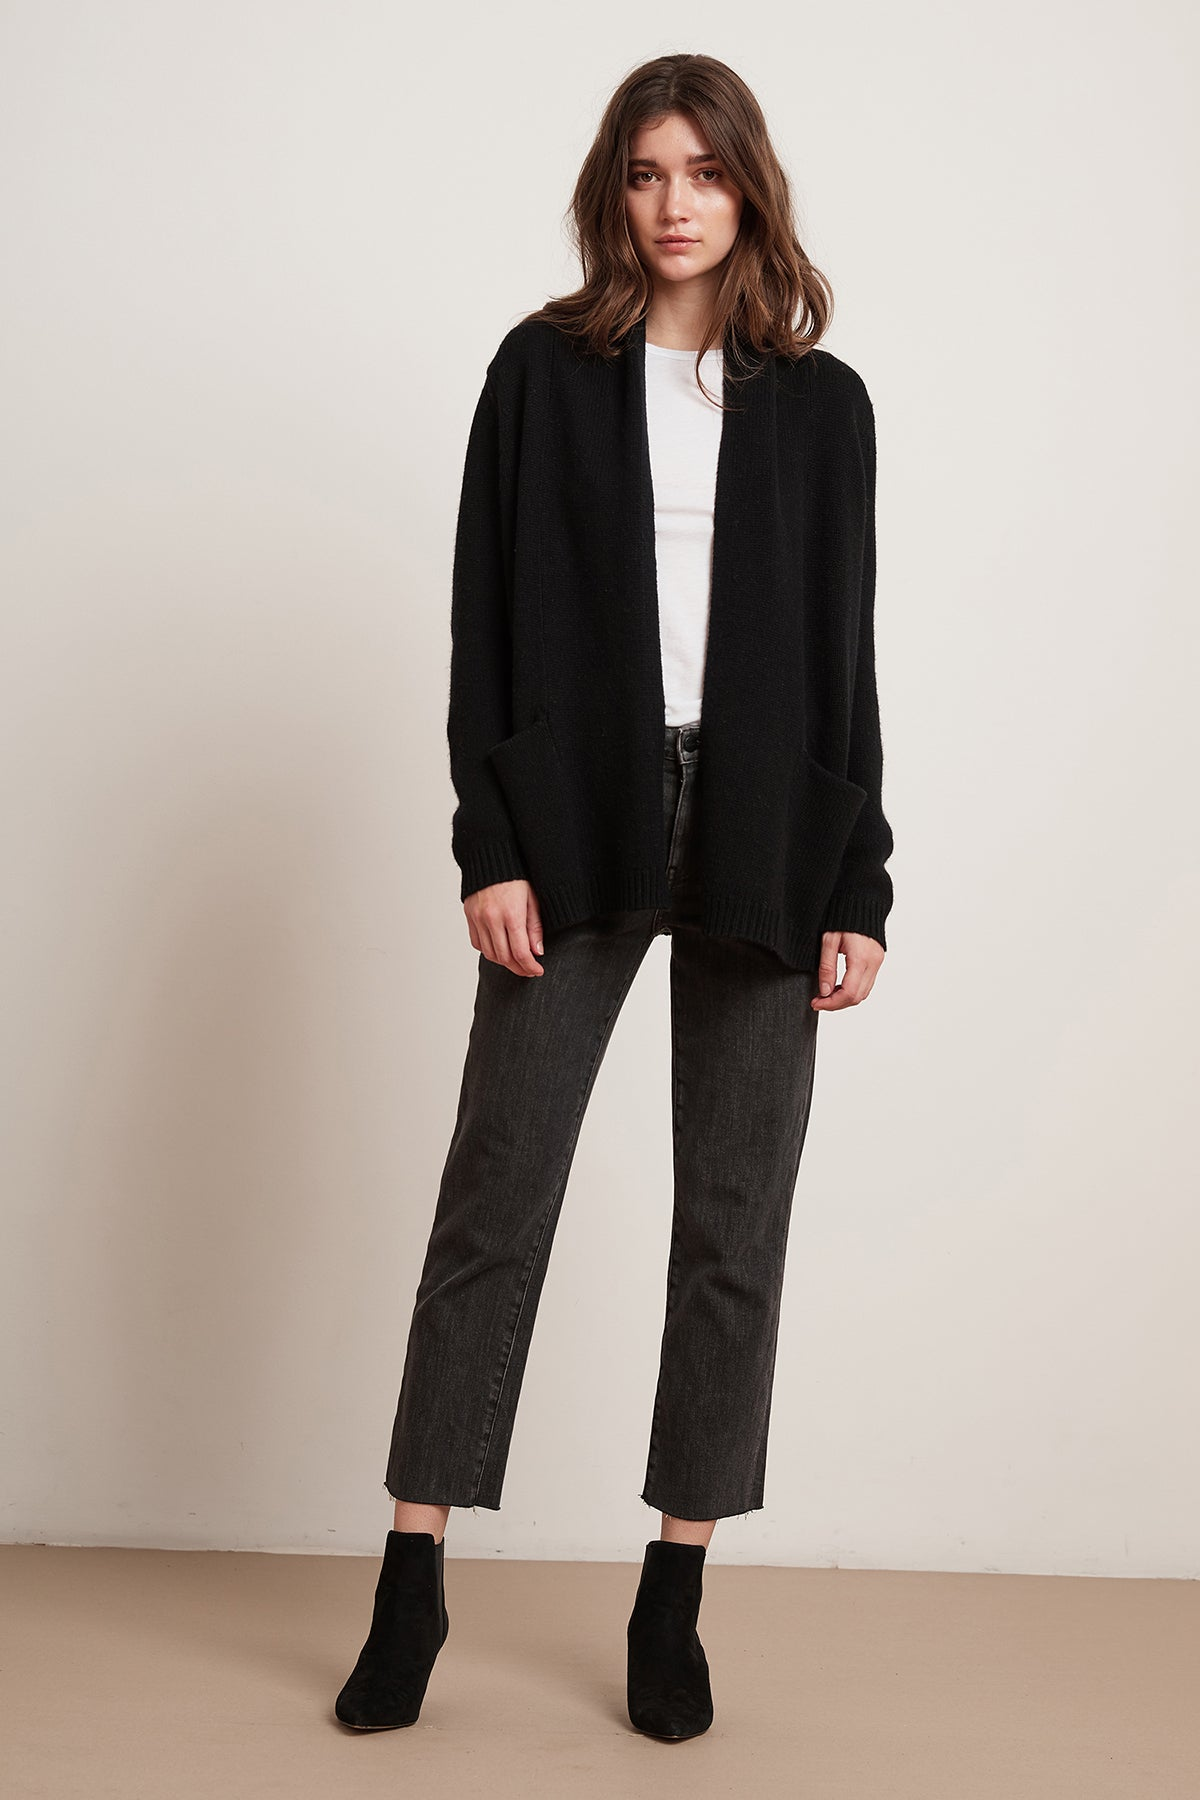 BRANDY LUX CASHMERE BLEND OPEN CARDIGAN